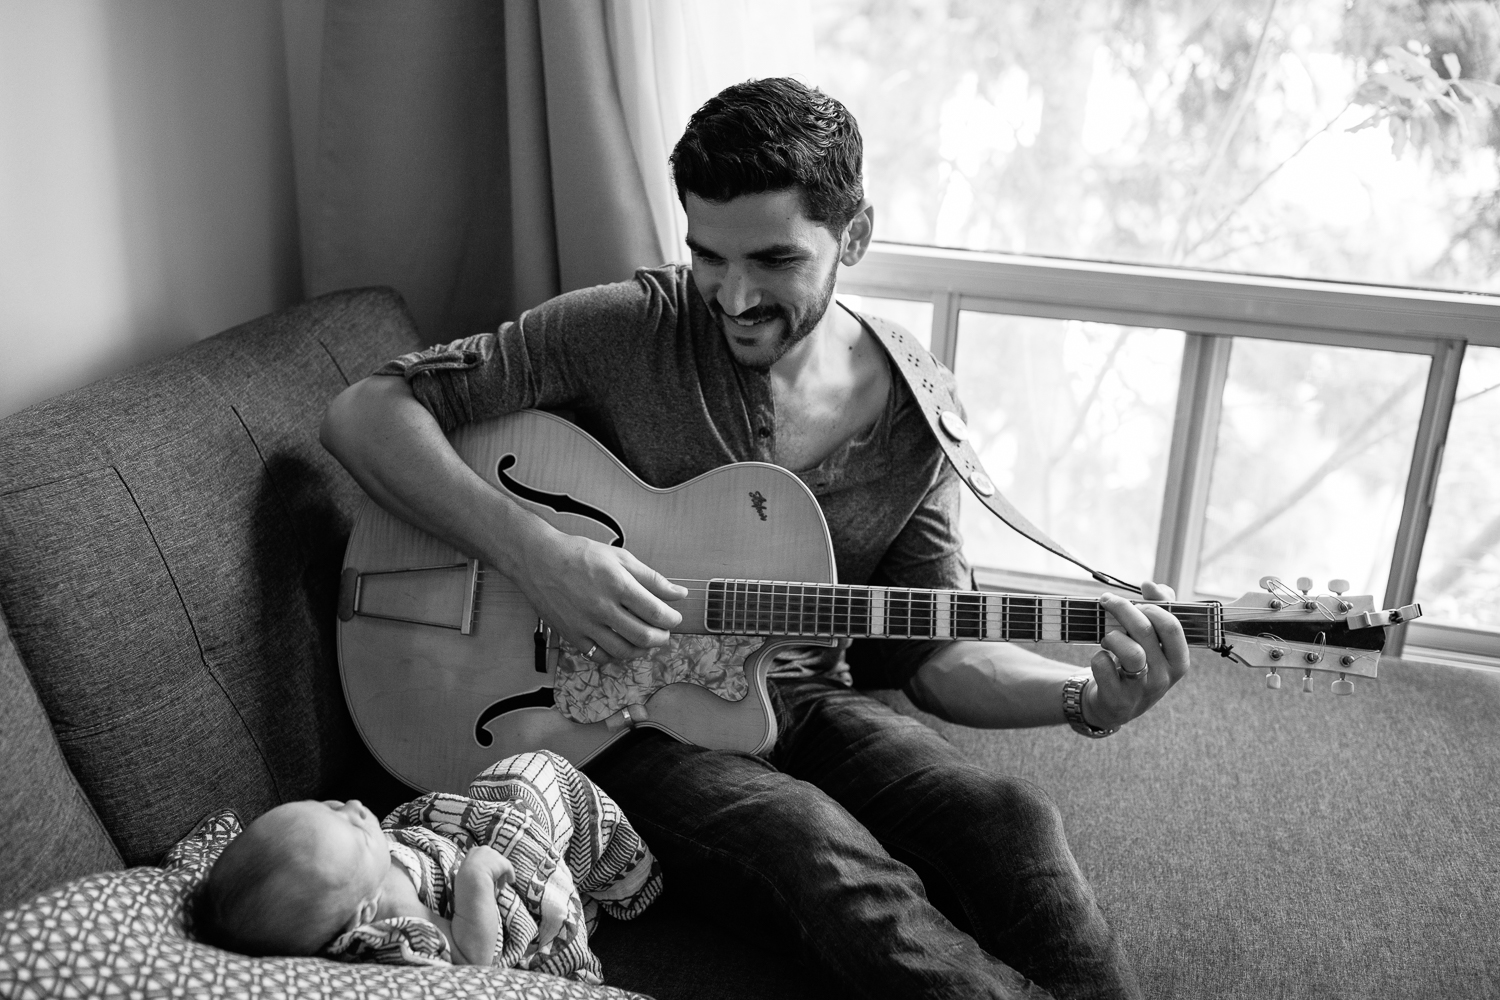 new dad sitting on living room couch playing guitar and singing to 2 week old baby boy lying against cushions - York Region LifestylePhotography